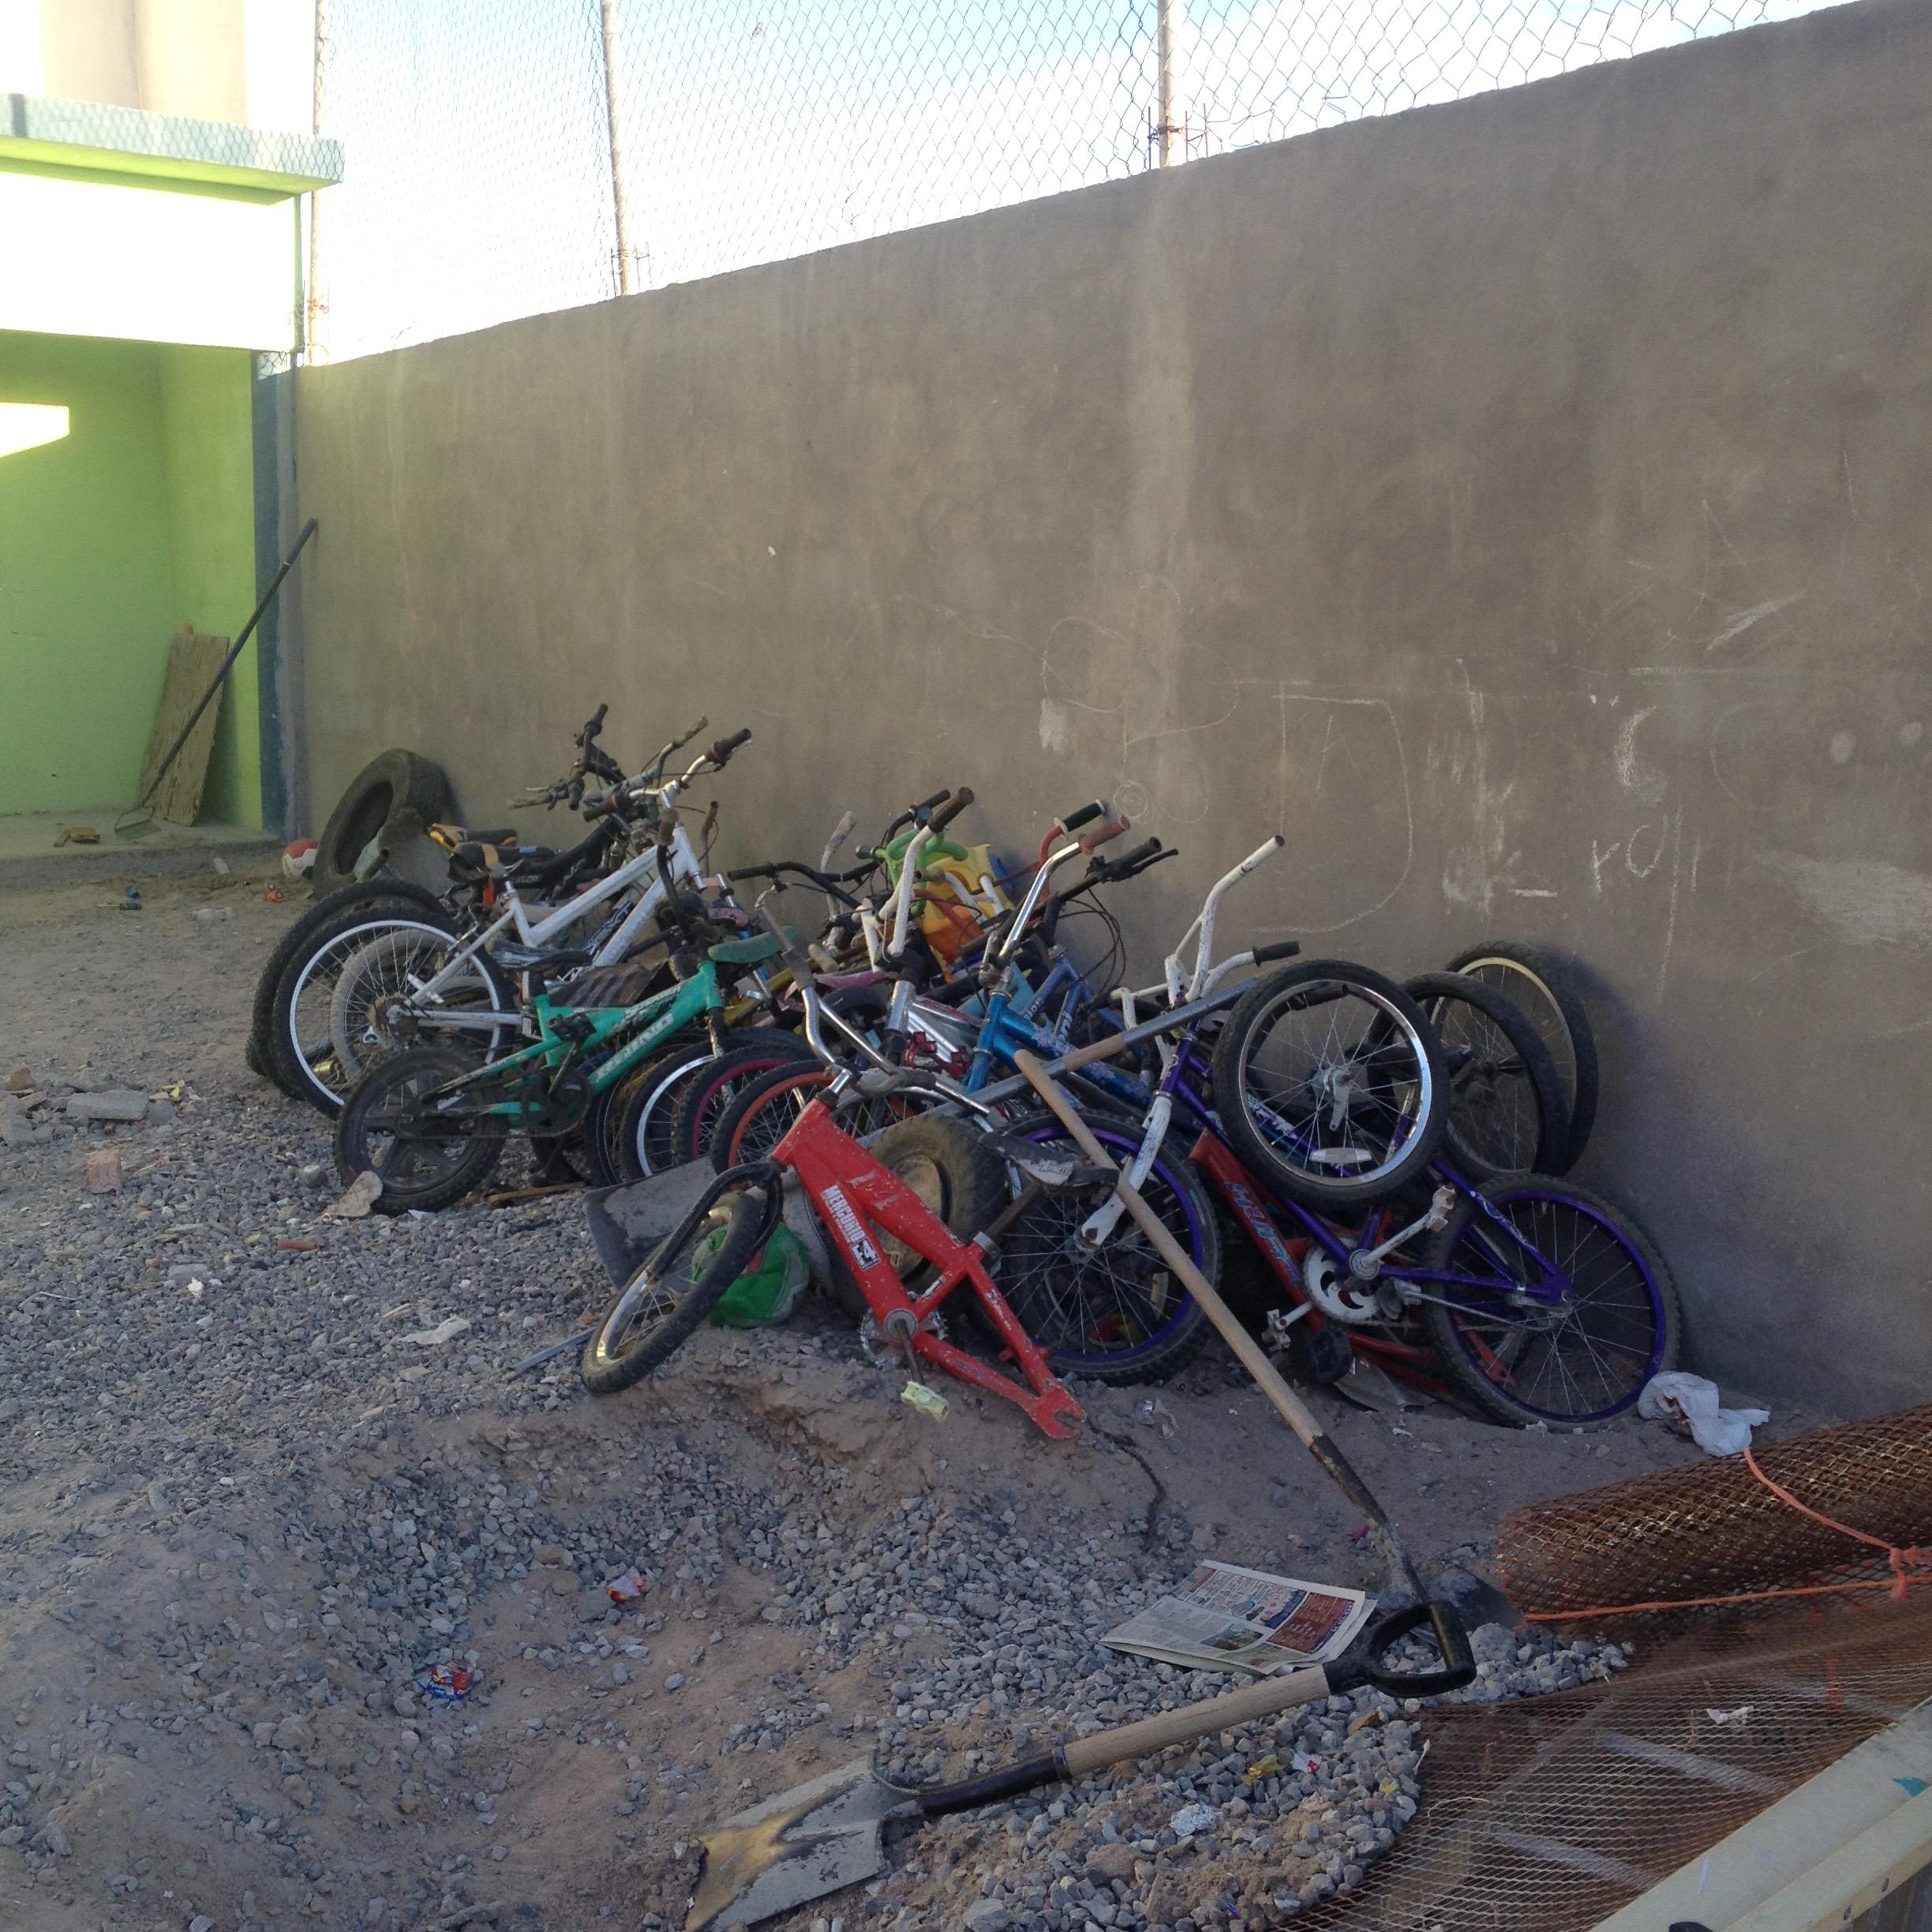 Bicycles neatly piled outside the boy's bedrooms building.